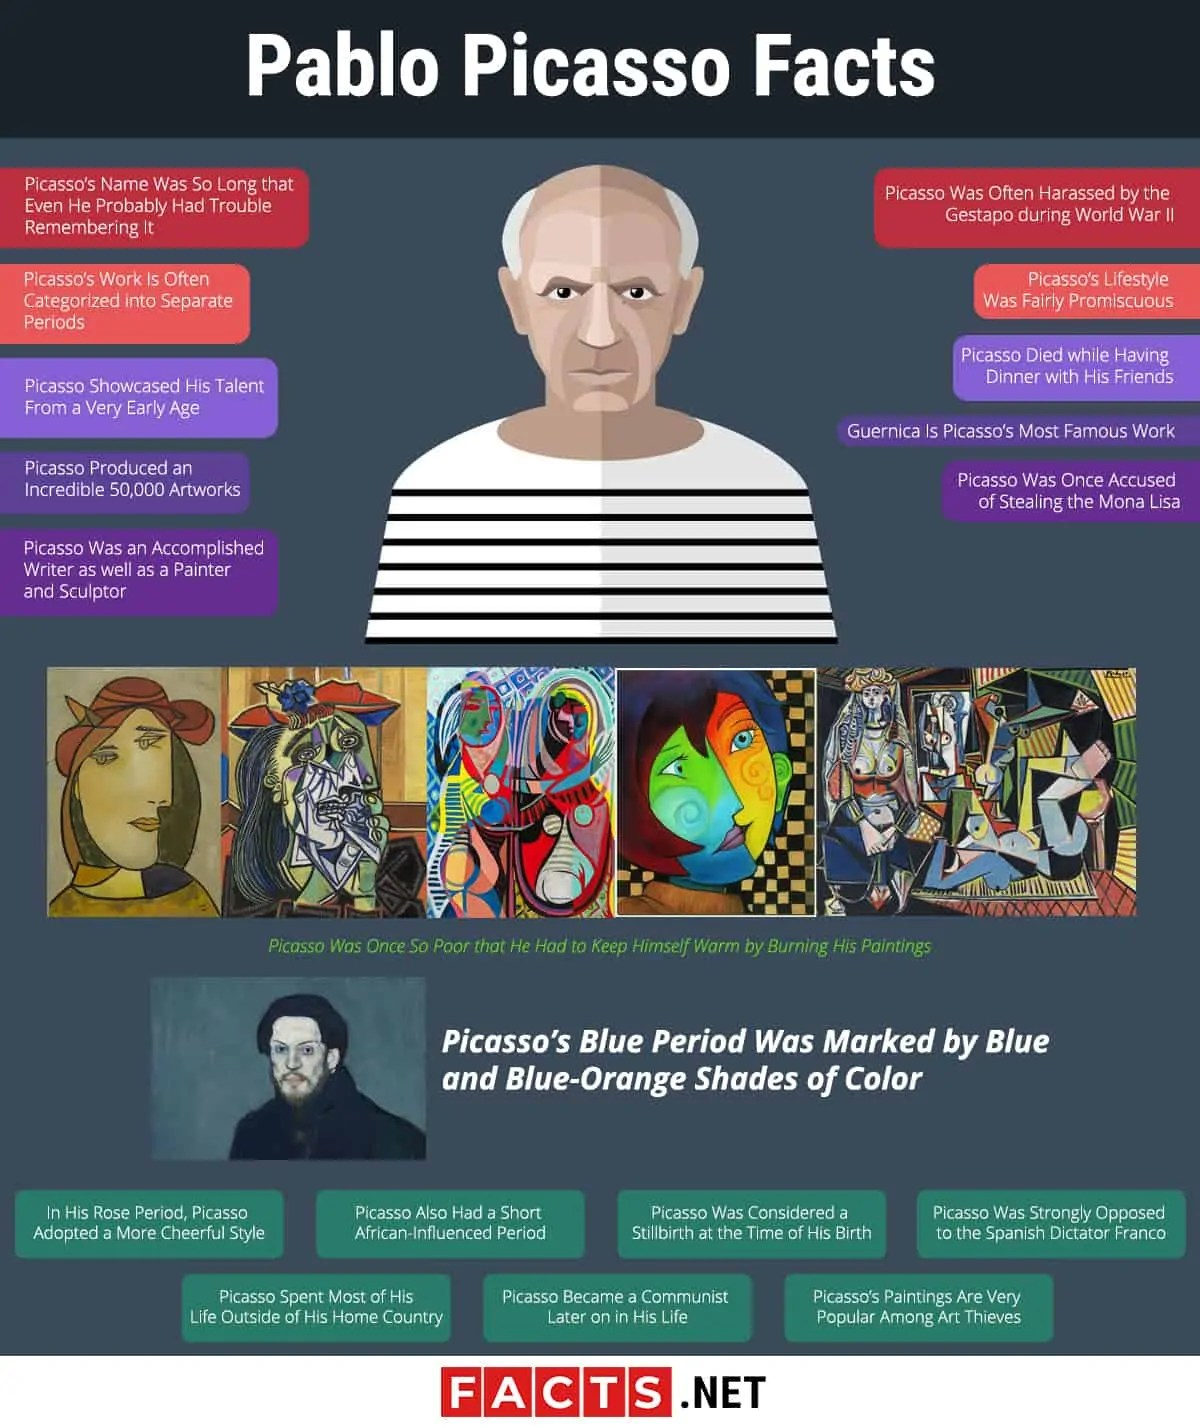 Top 20 Facts About Pablo Picasso